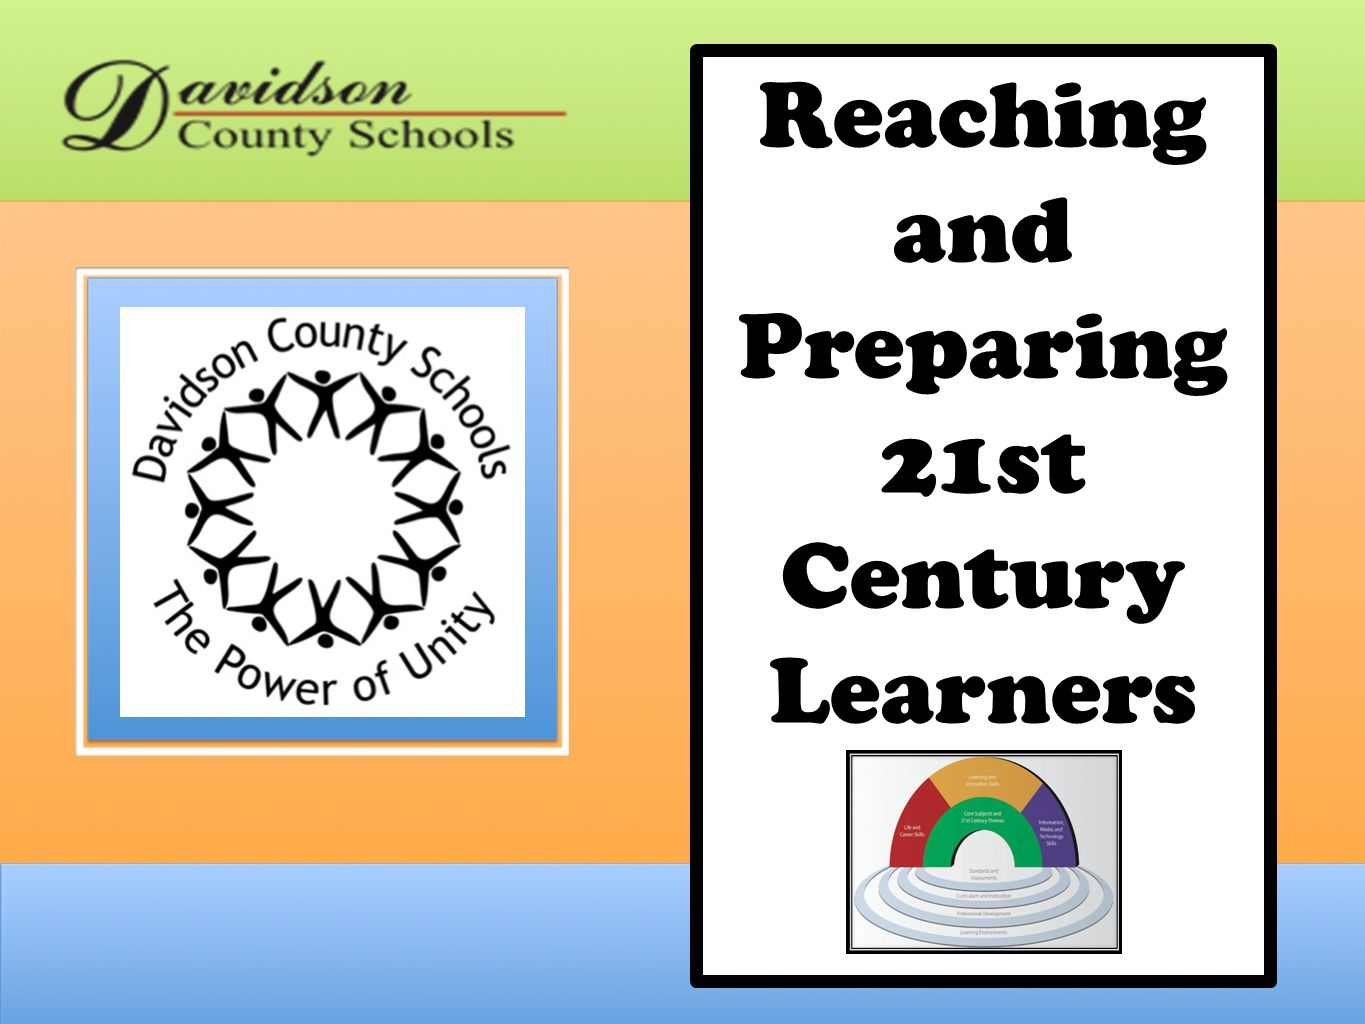 Reaching and Preparing 21st Century Learners